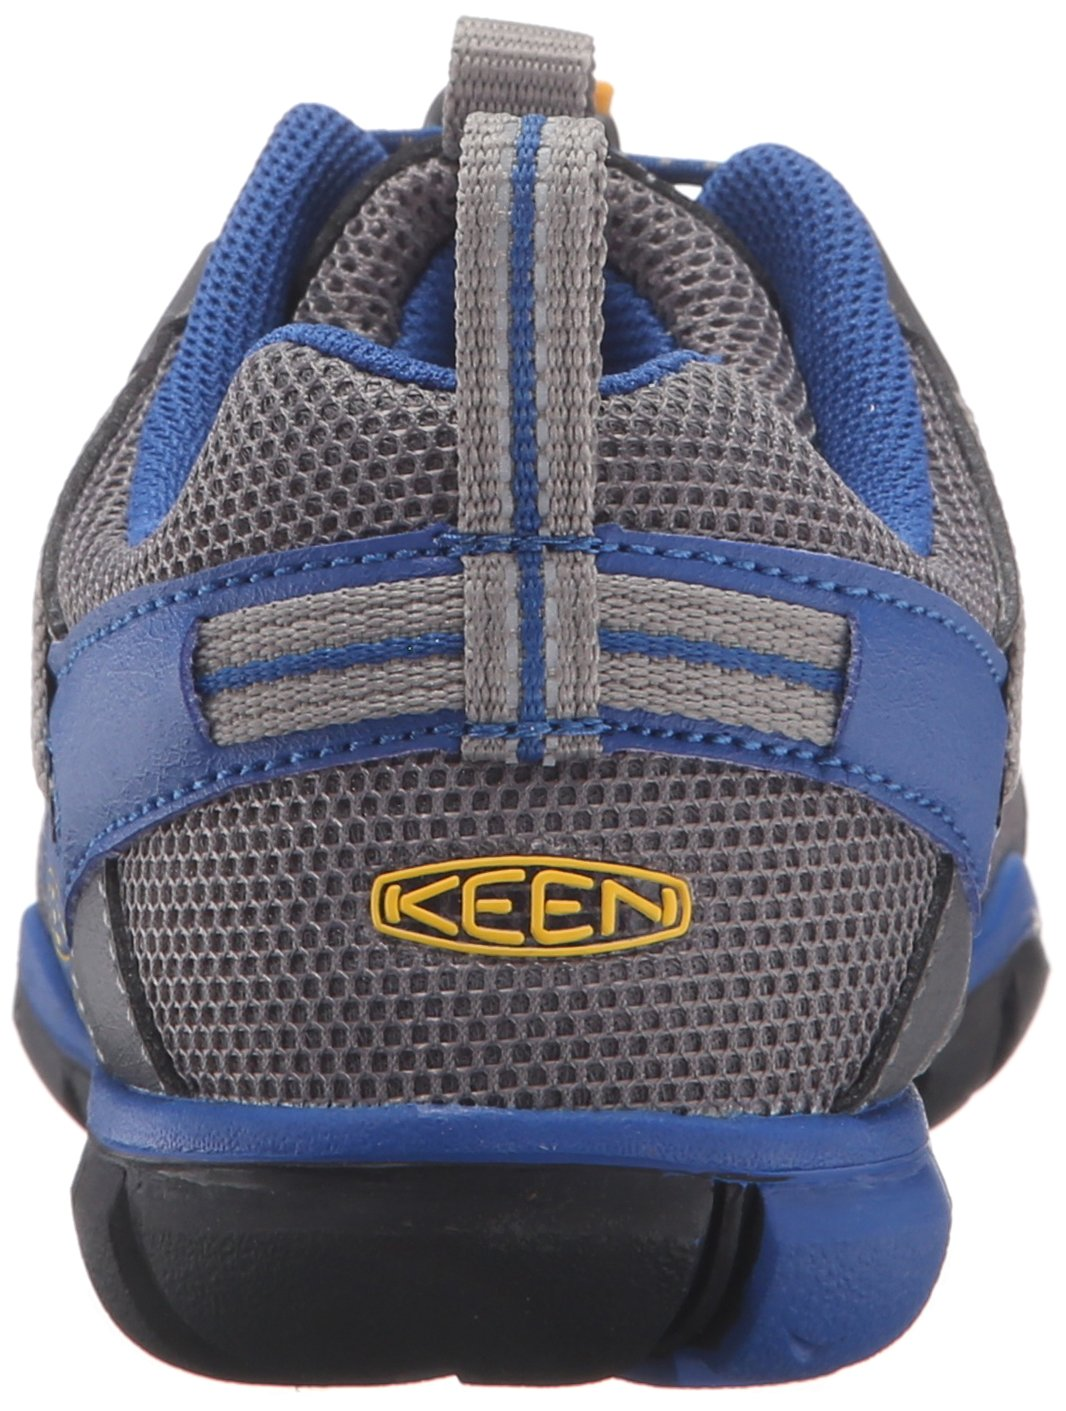 KEEN Chandler CNX Shoe B01921GJ1Q 5 Youth US Big Kid|Gargoyle/True Blue